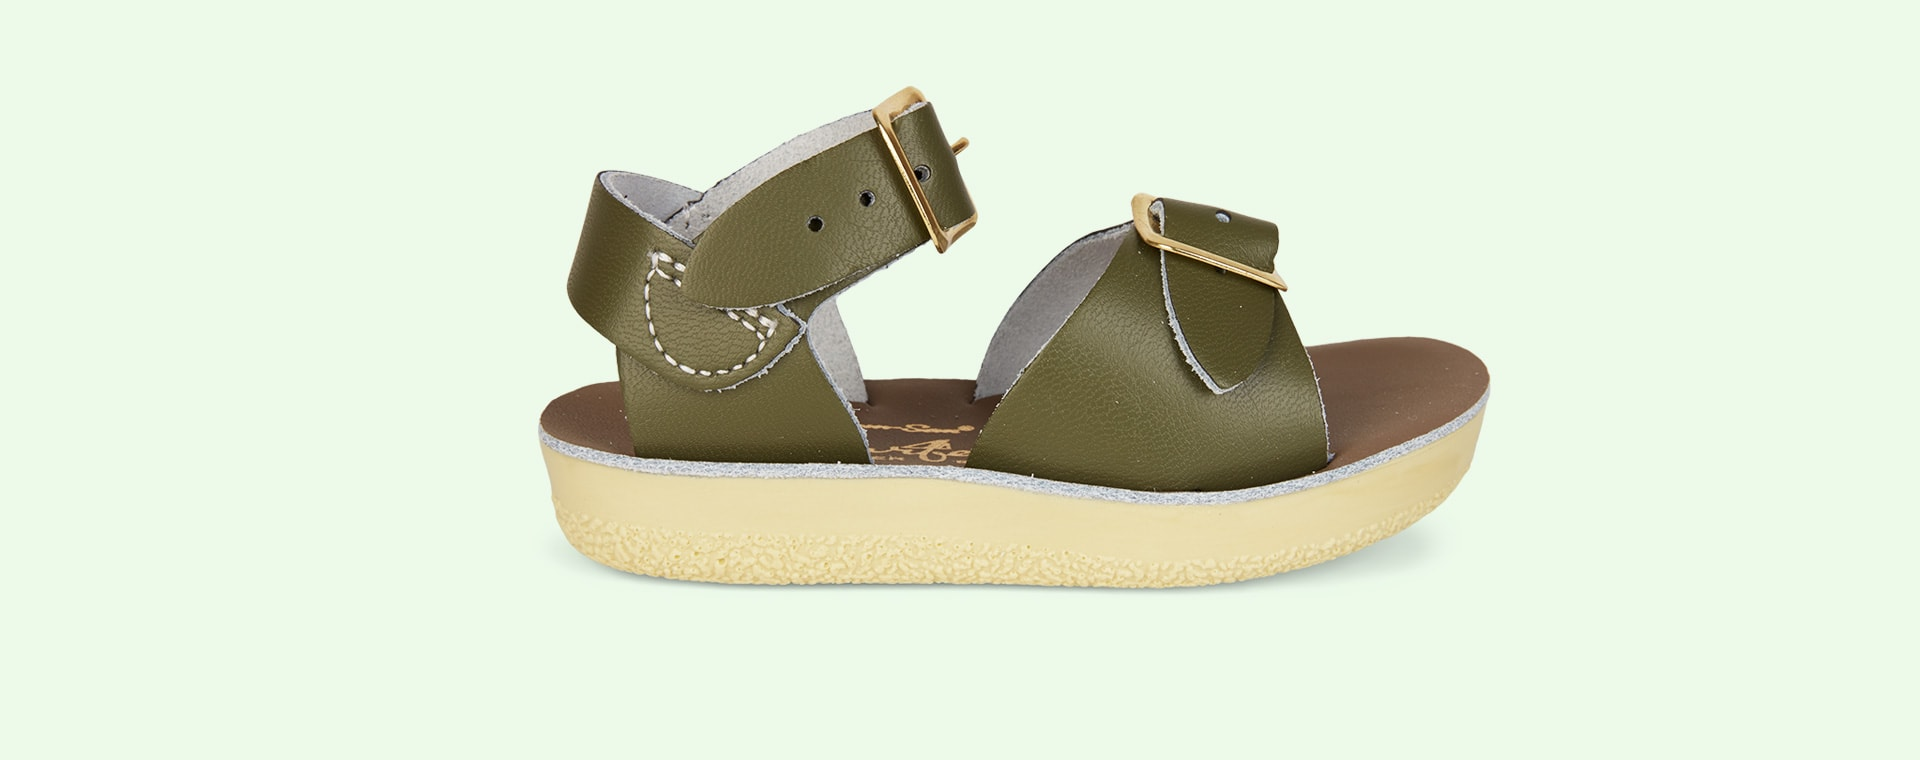 Olive Salt-Water Sandals Surfer Sandal